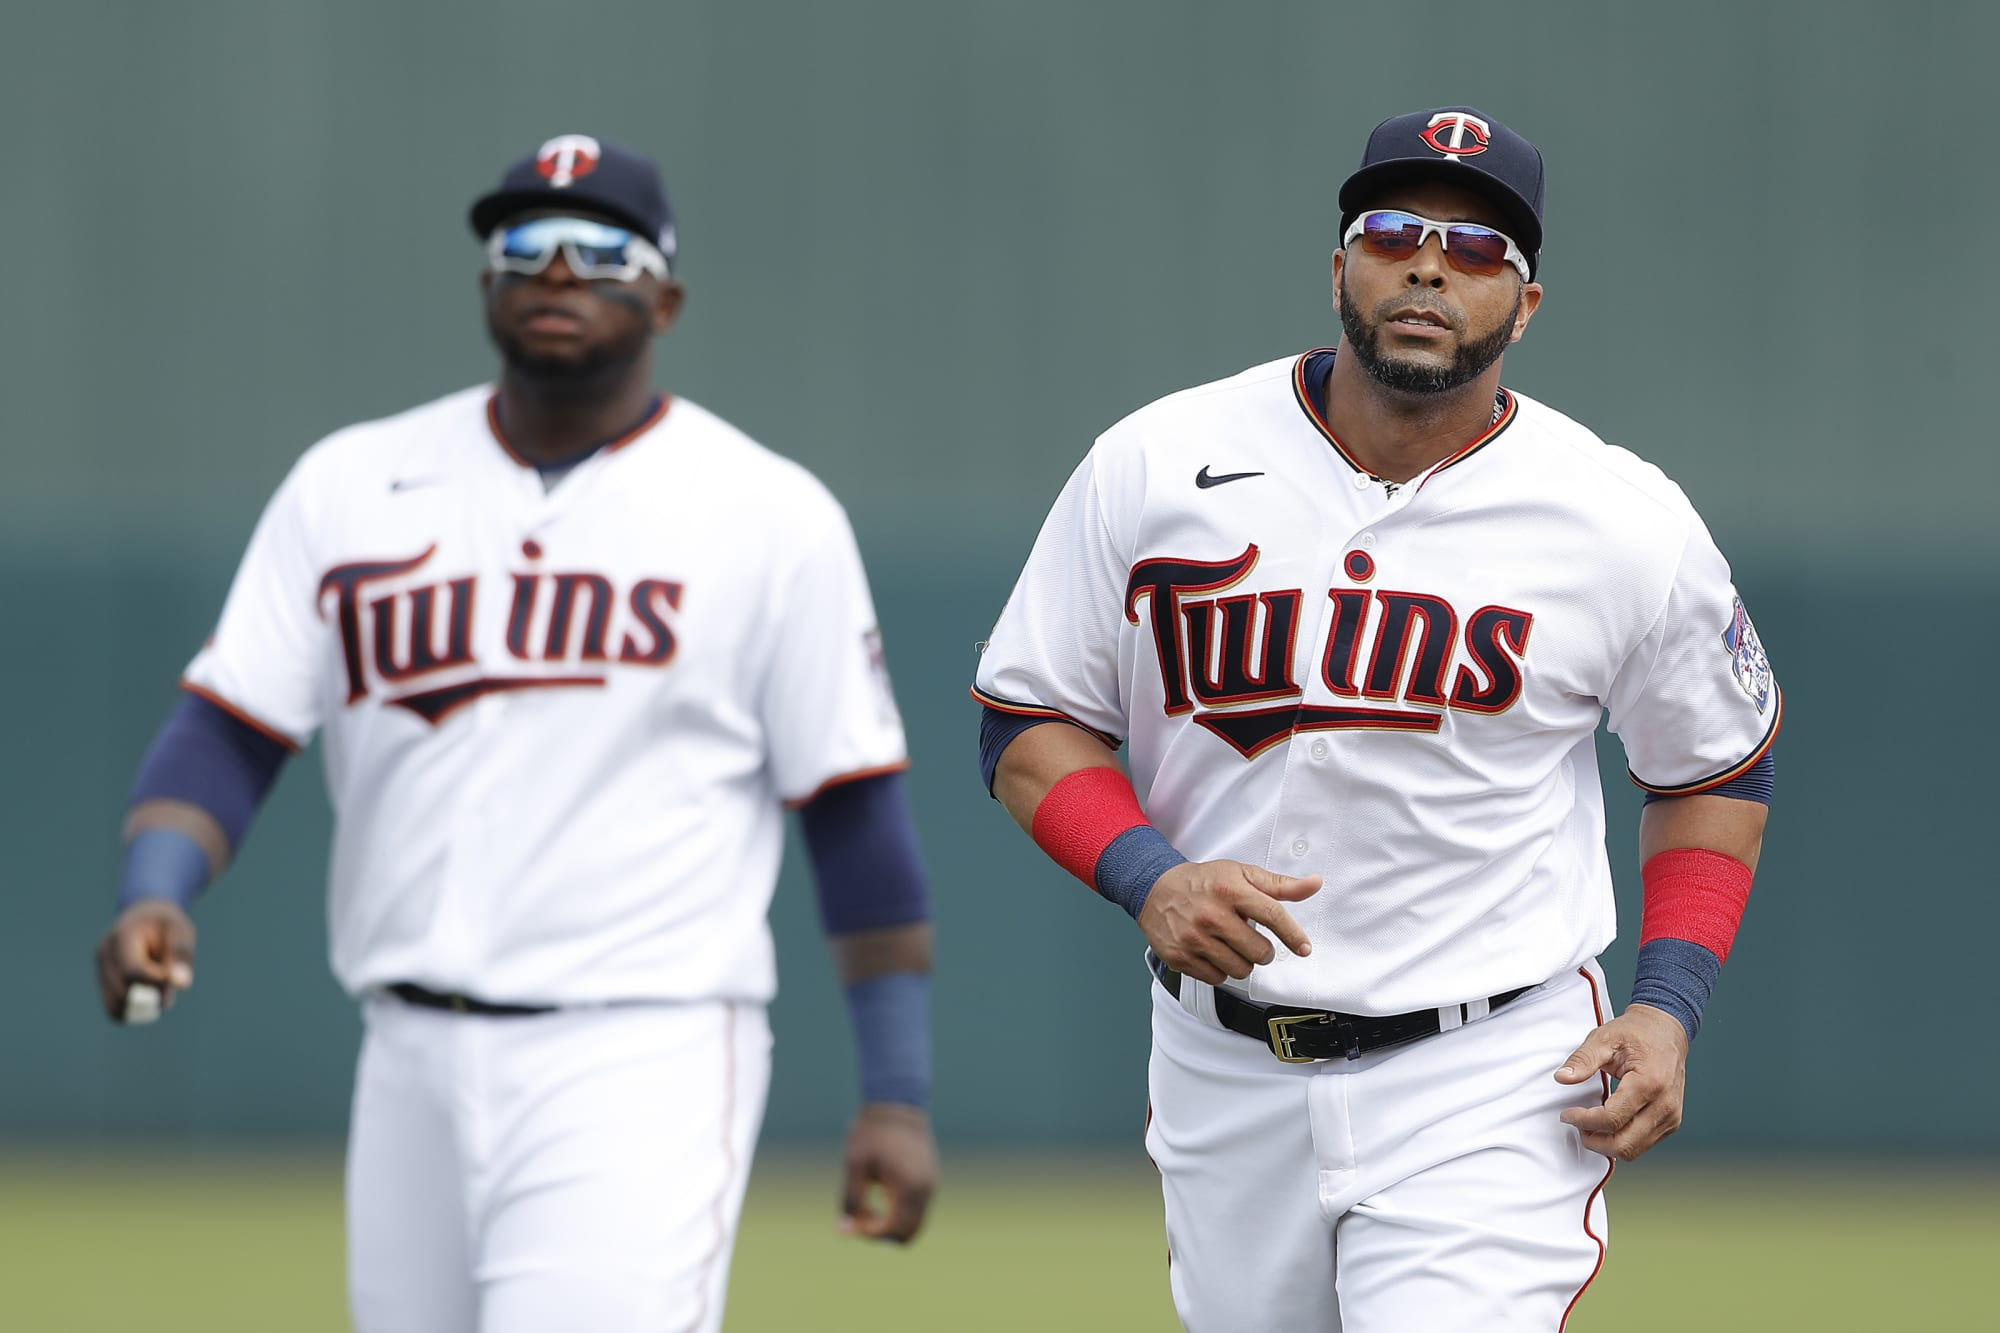 Are there any other players Twins could add to hit EVEN MORE BOMBS?